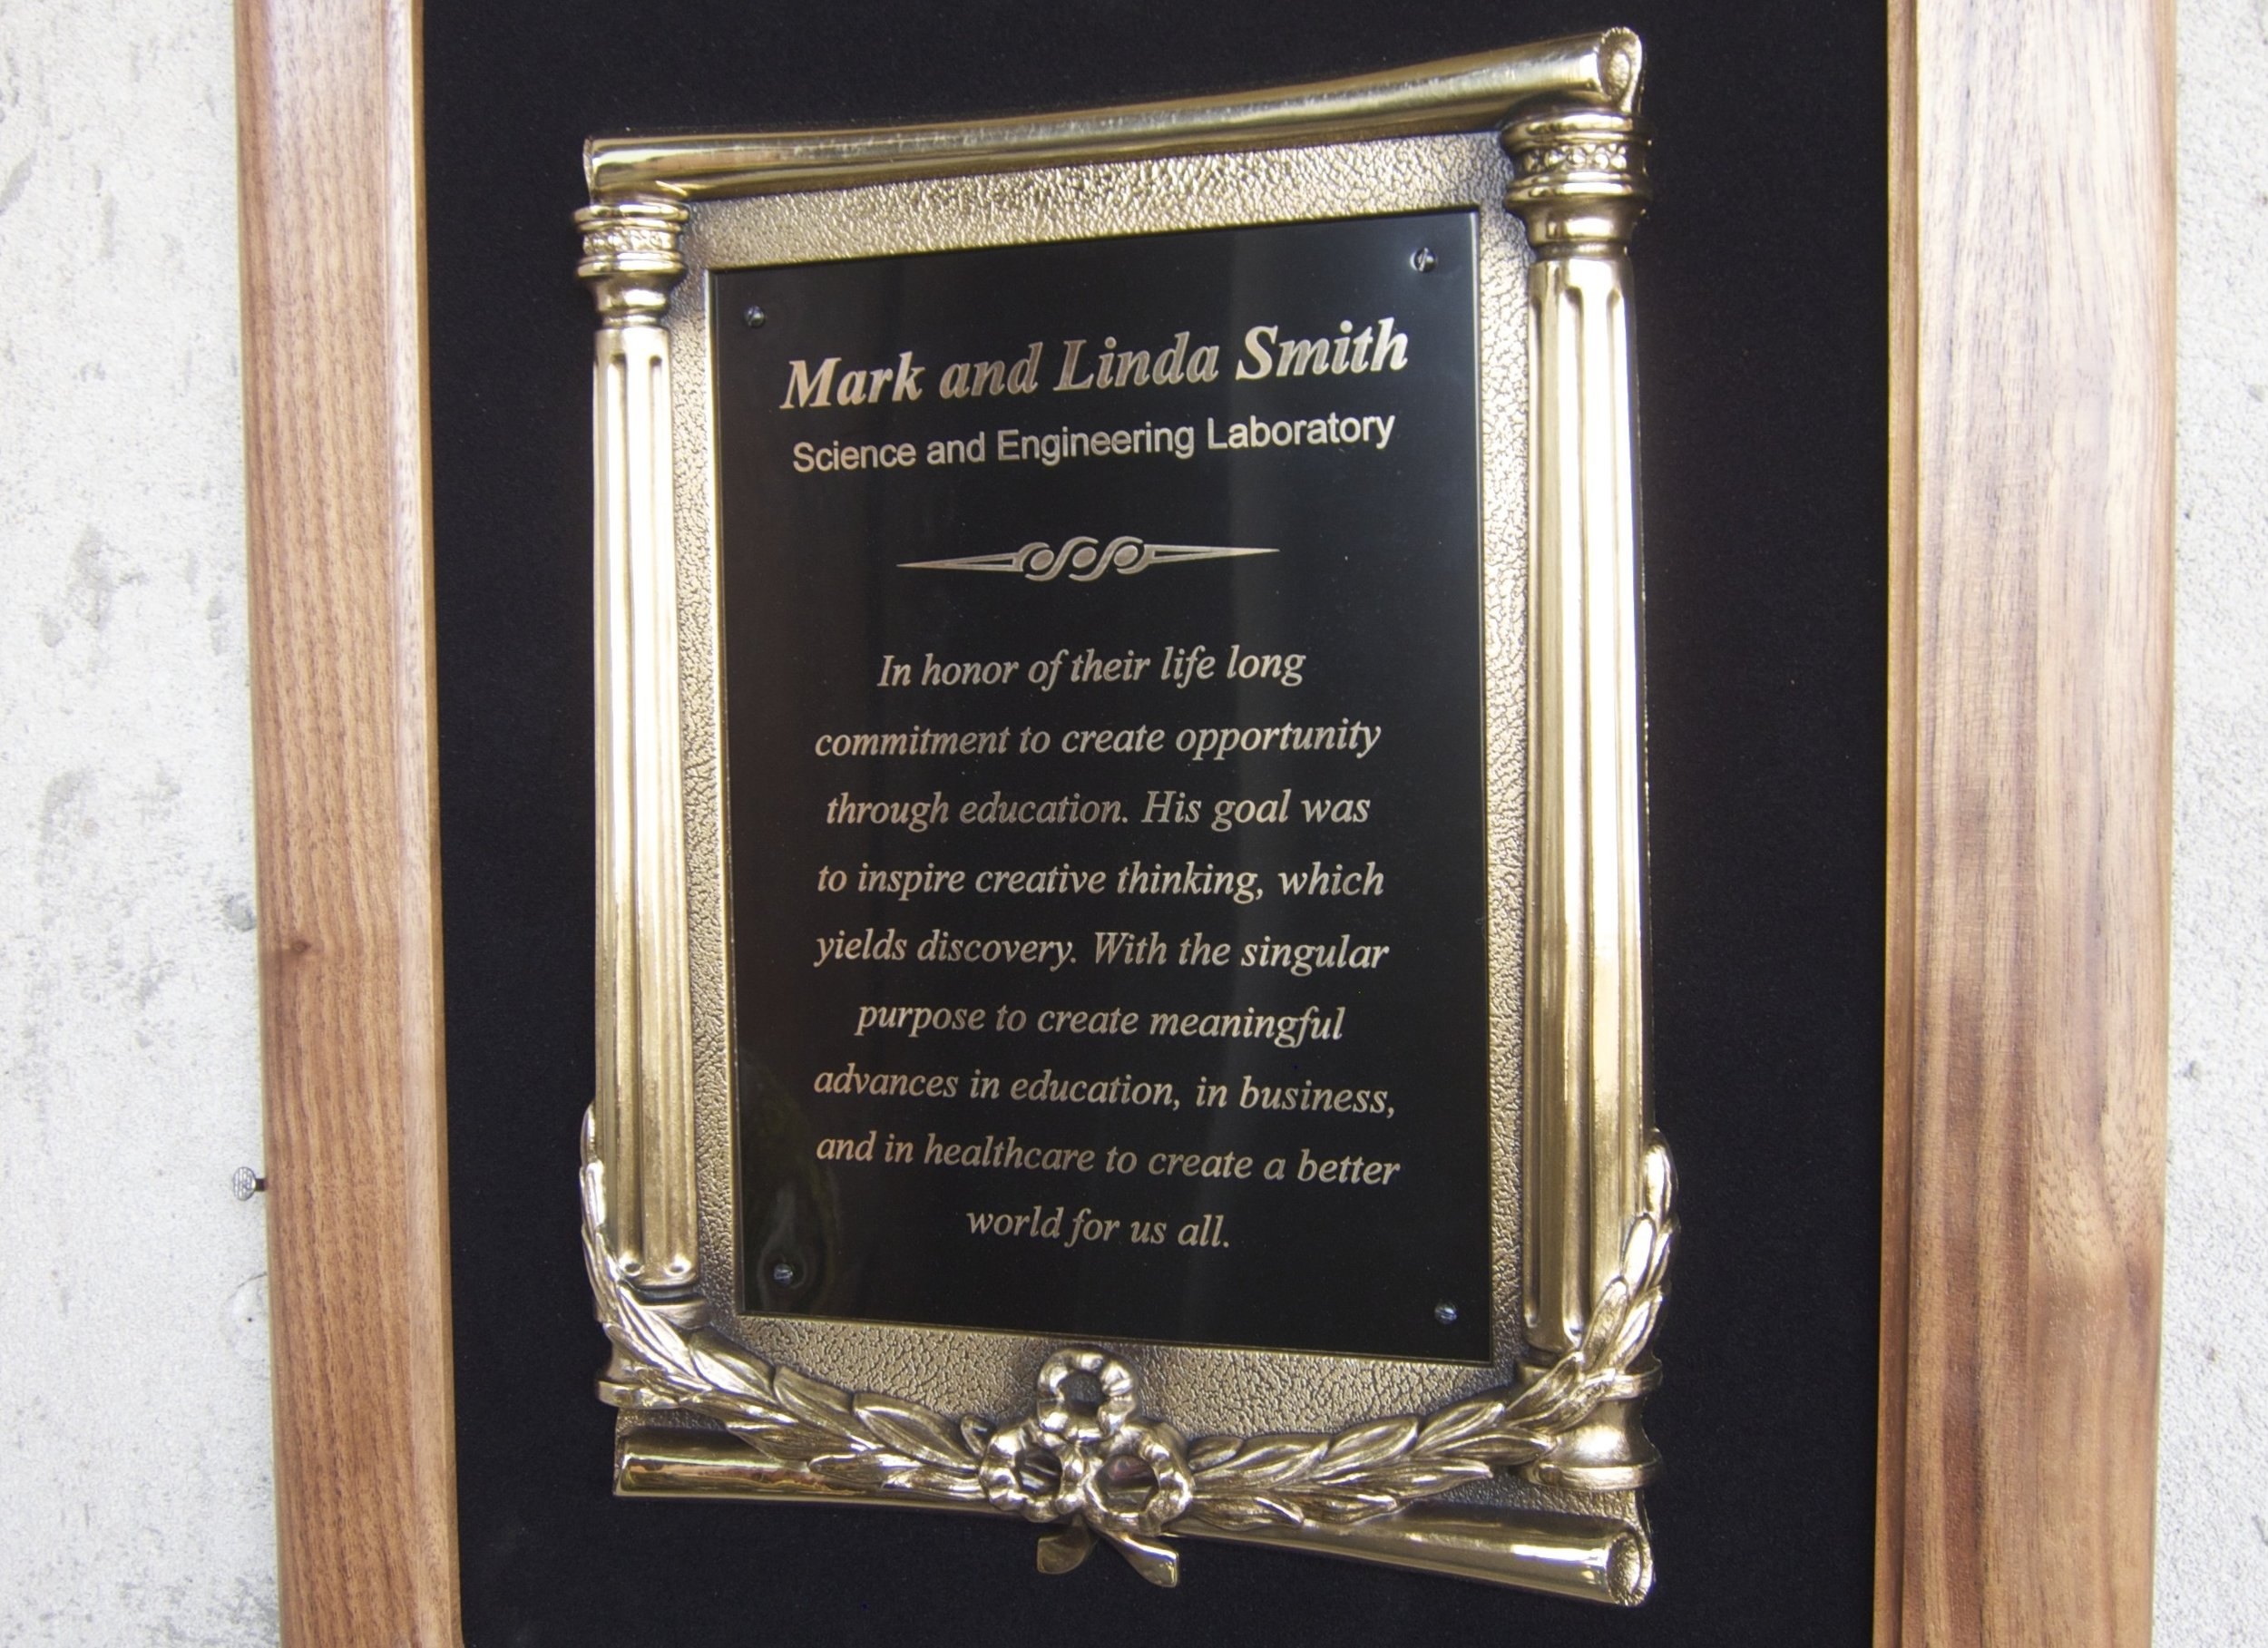 The plaque at Nigerian Christian Hospital recognizing the Smith Family Foundation's generous donation.